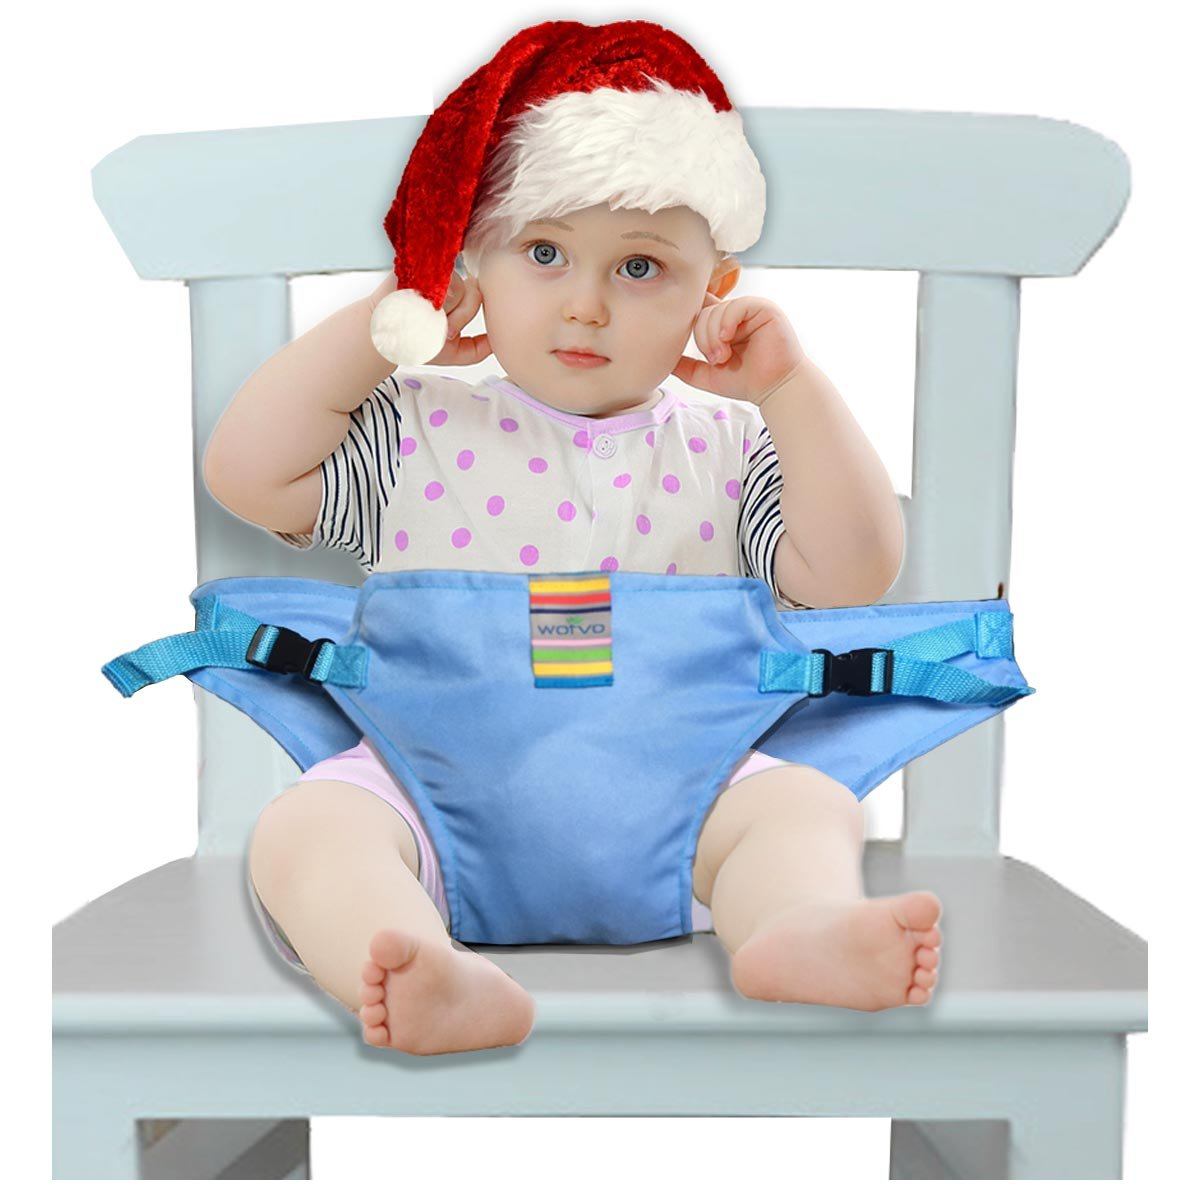 The Washable Portable Travel High Chair Booster Baby Seat with straps Toddler Safety Harness Baby feeding the strap (6 Color) (Blue) Hangzhou Wo yu Trading Co. Ltd zyd-01A